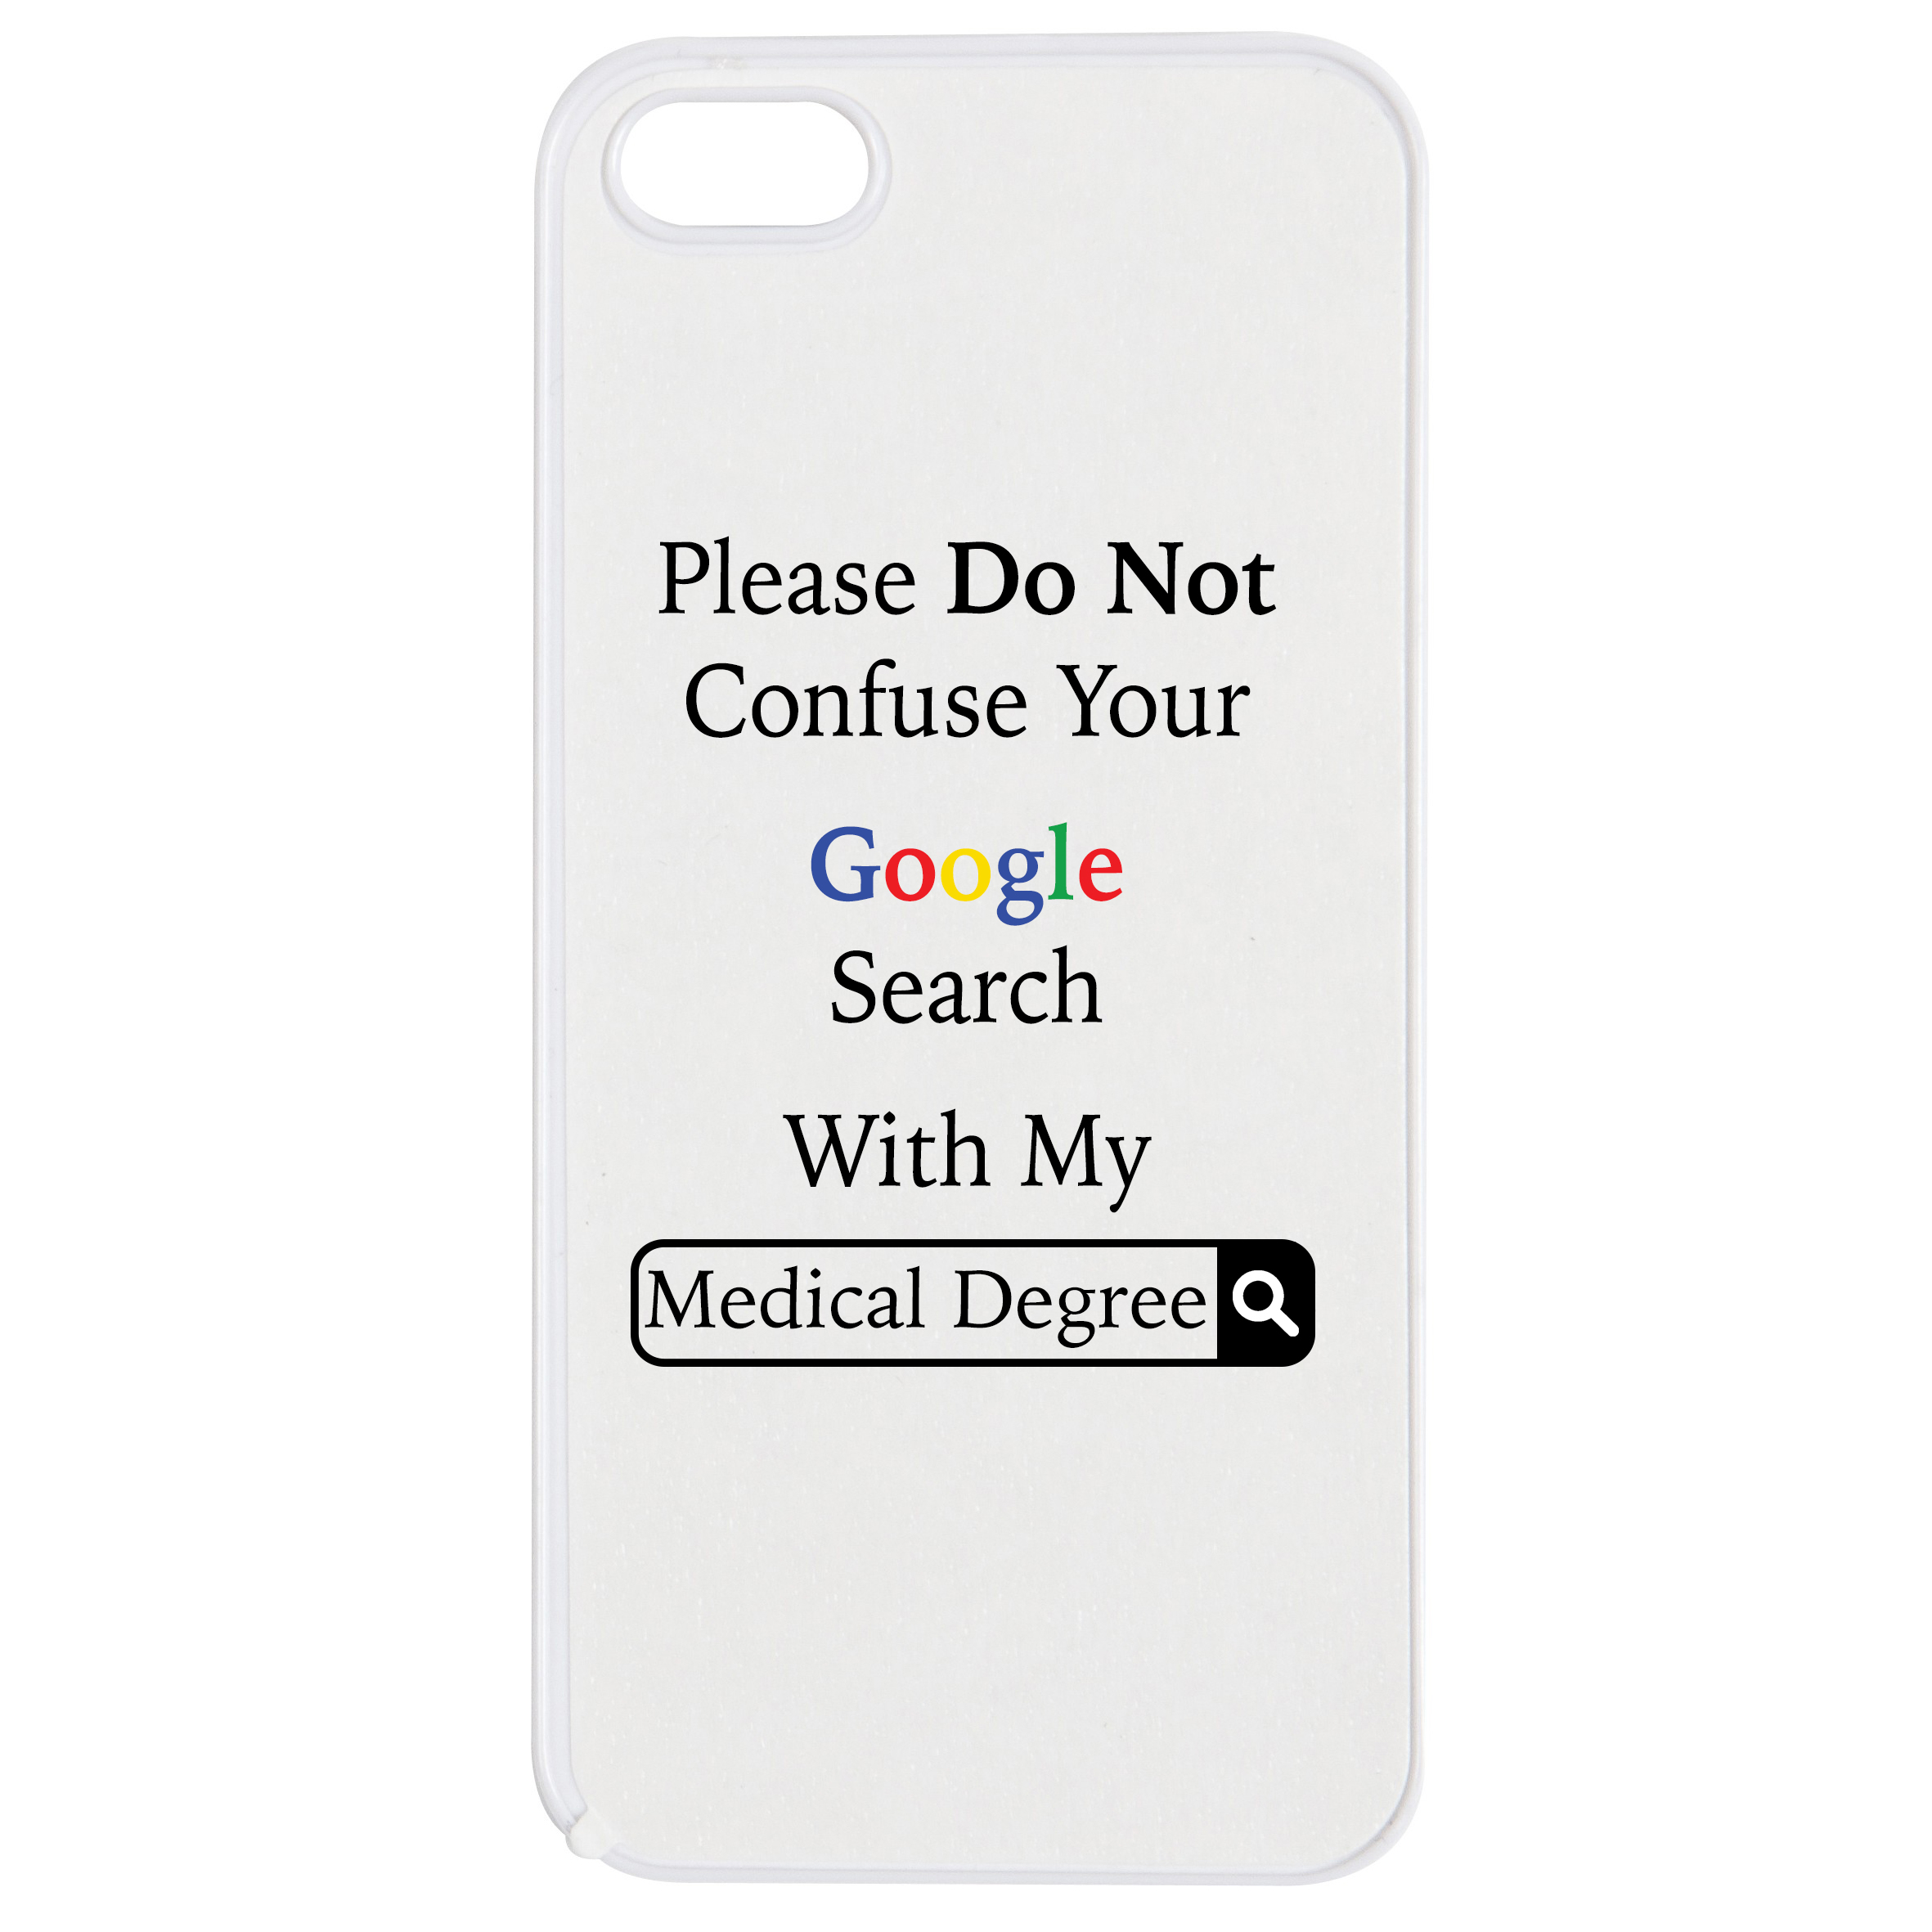 Please do not confuse your google search with my medical degree phone case